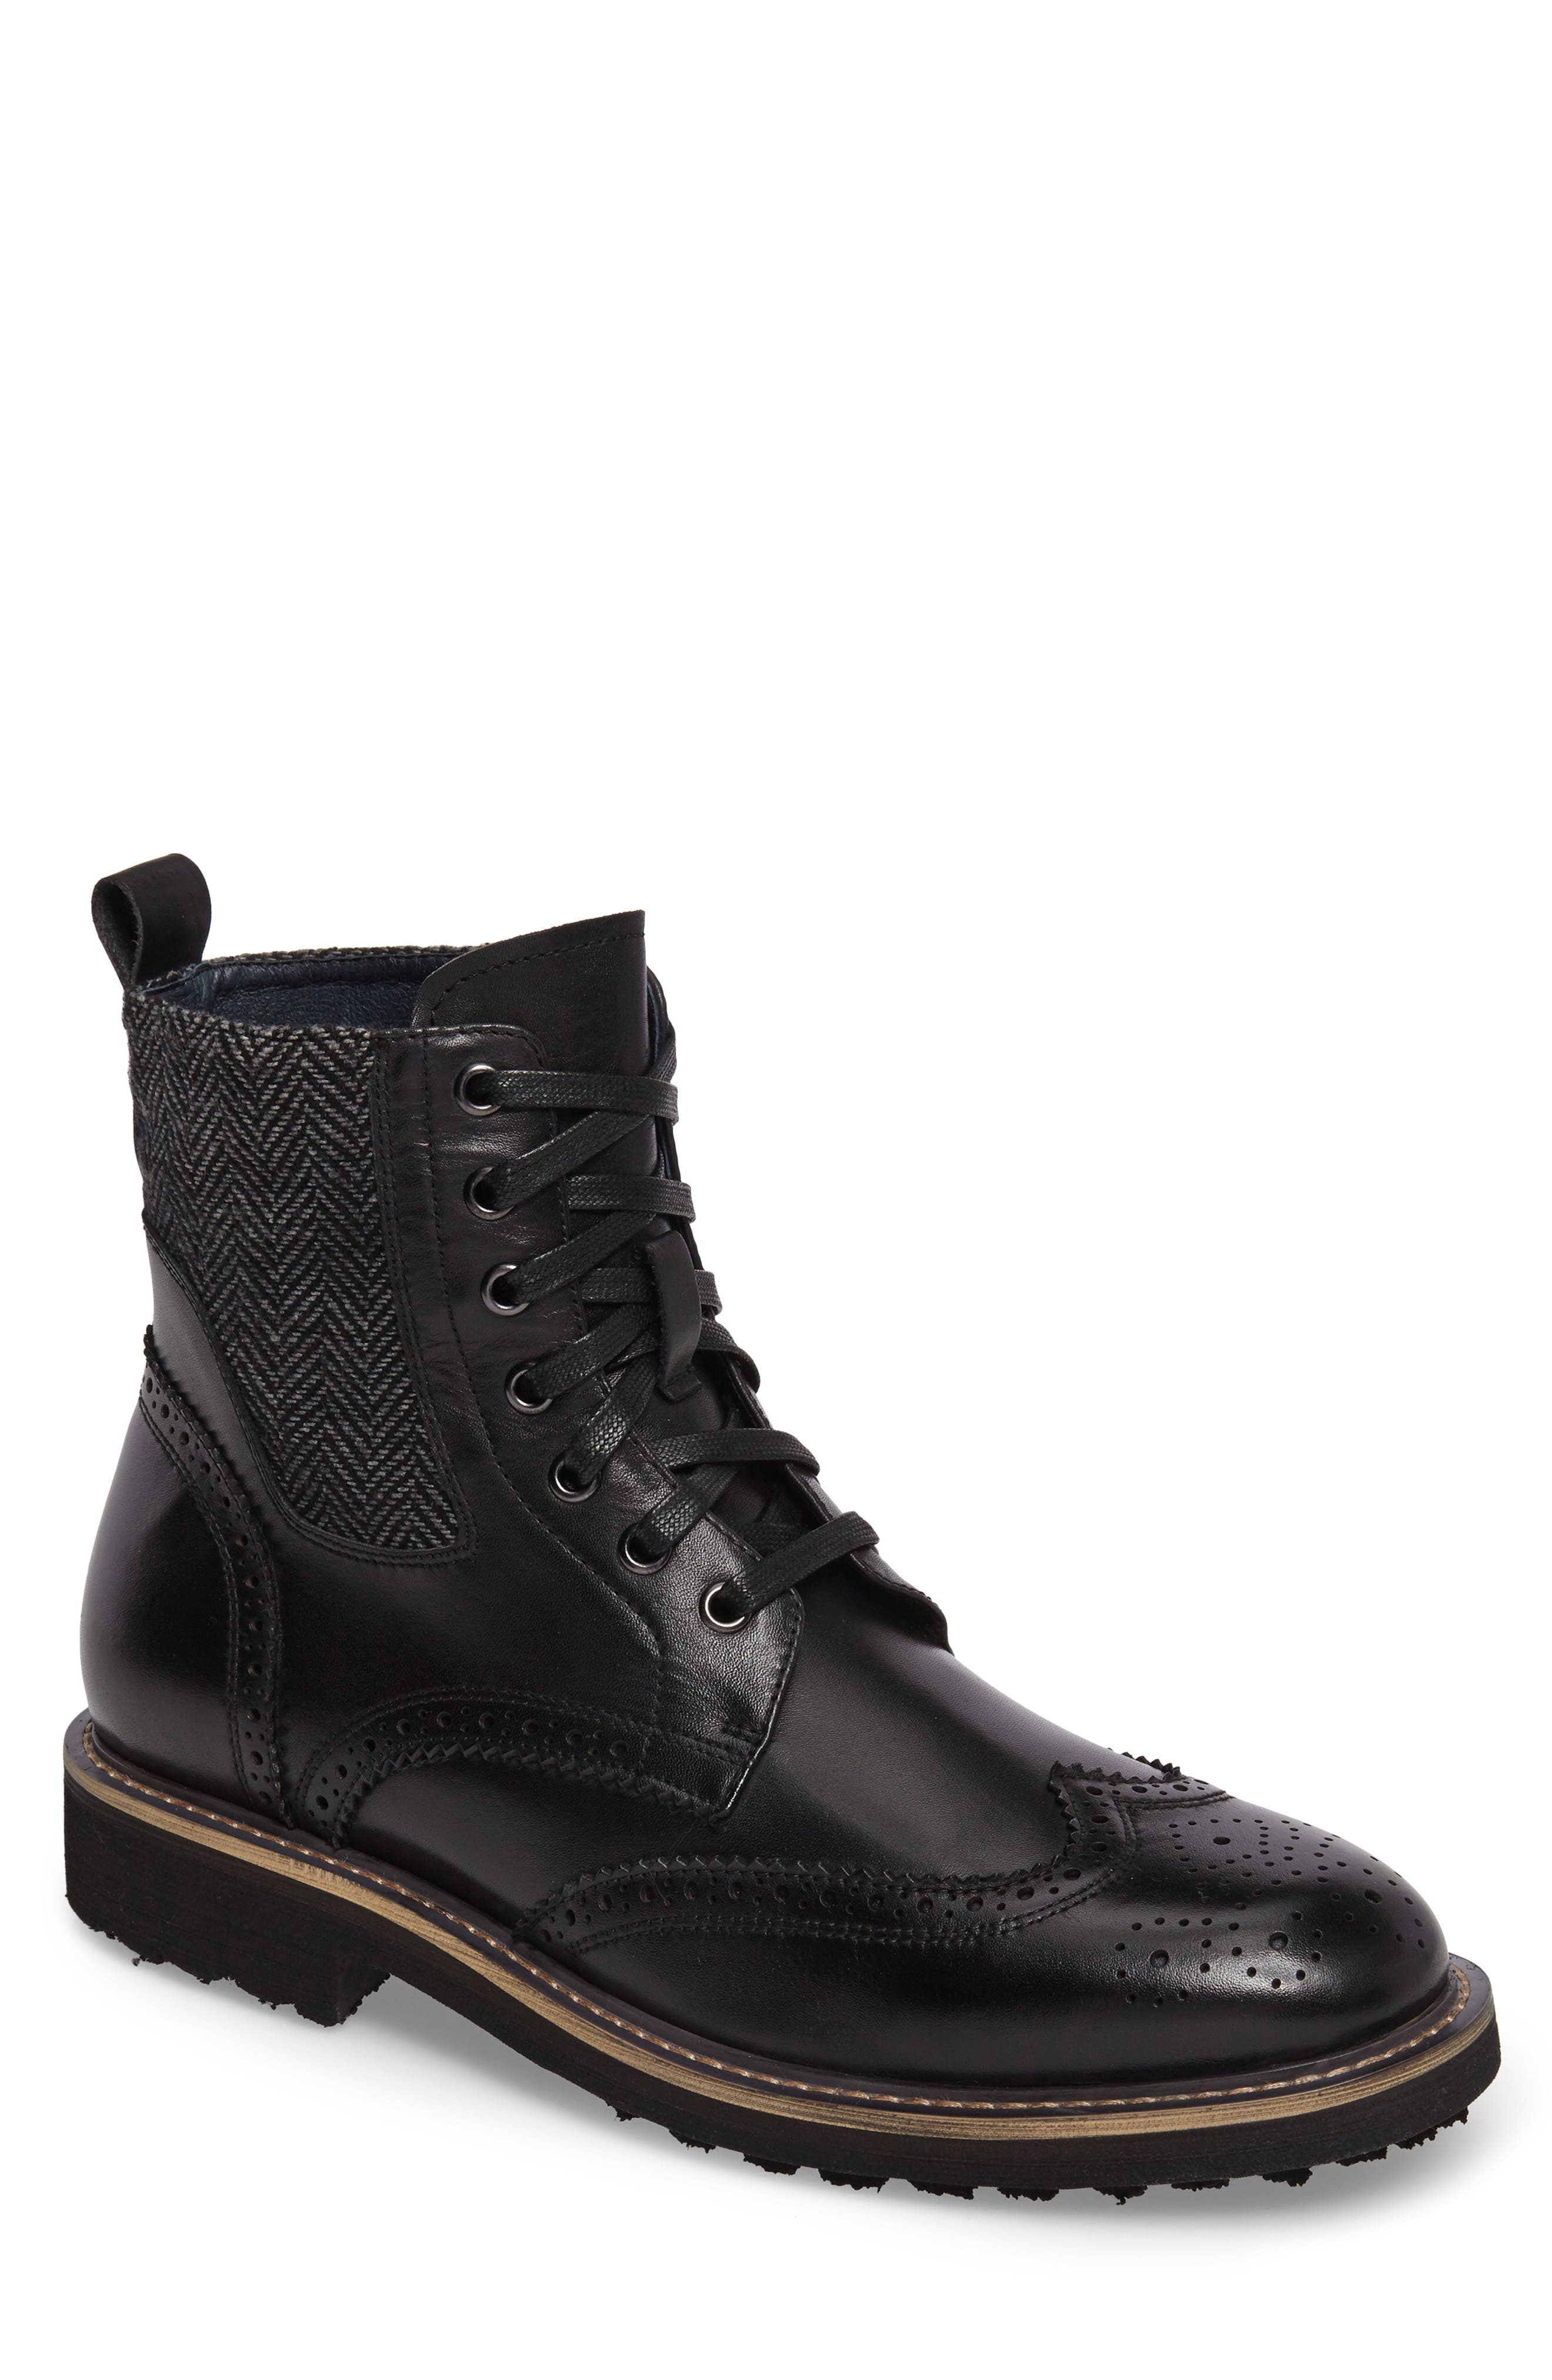 Farber Wingtip Boot,                             Main thumbnail 1, color,                             BLACK LEATHER